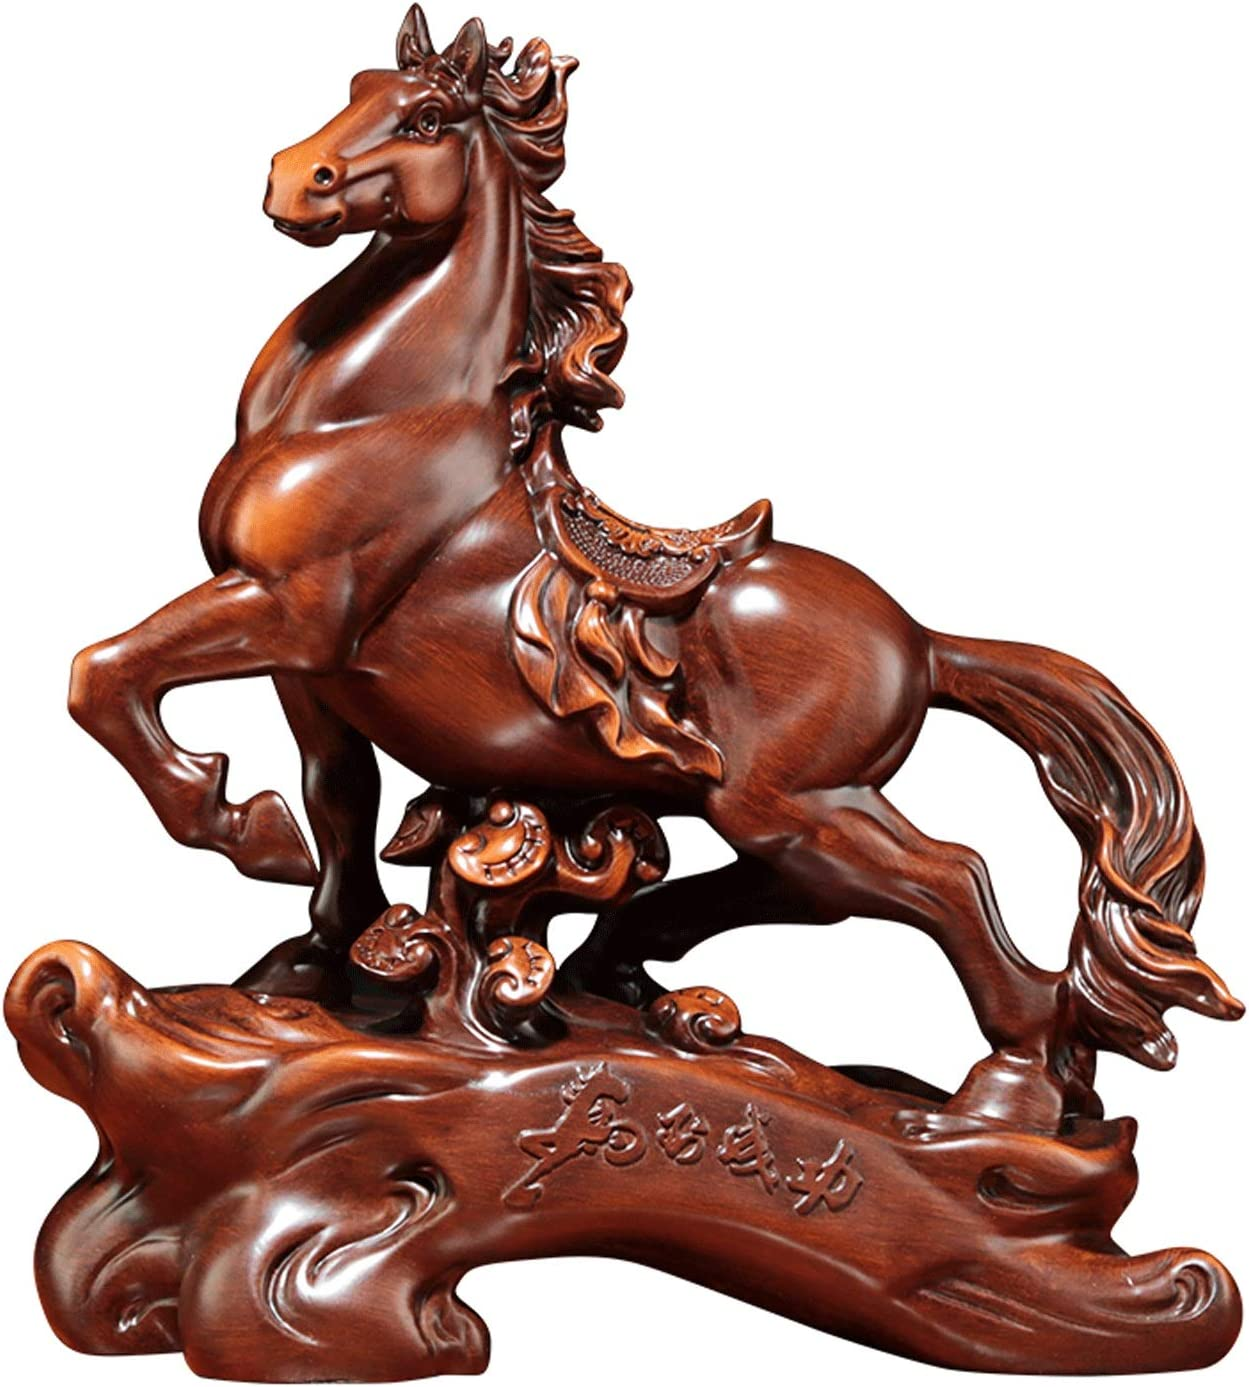 CJshop Max 63% OFF Home Decor Special price Statues Zodiac Horse Ornament Base with Resin